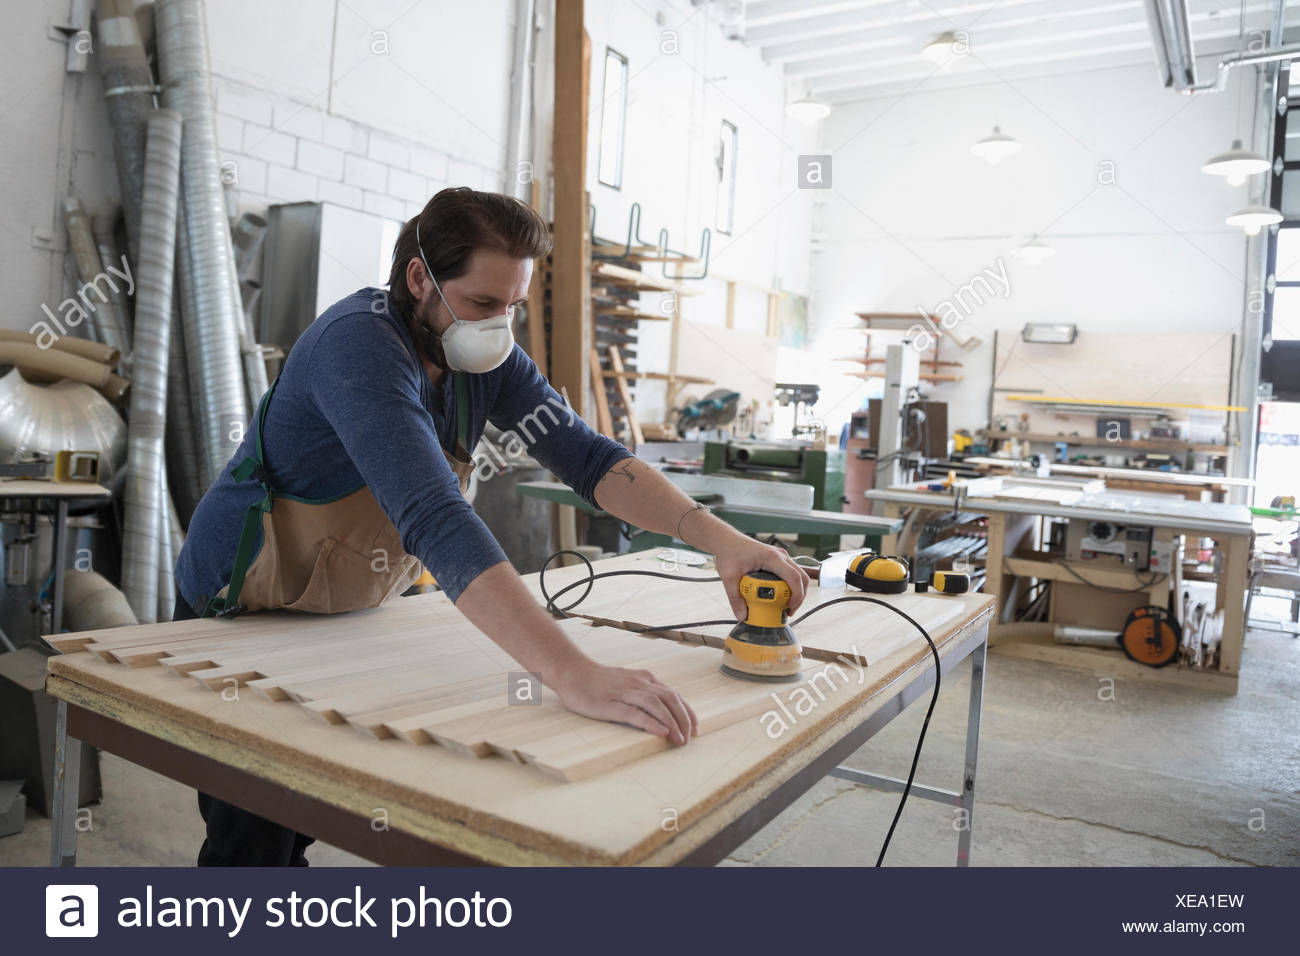 Male carpenter wearing protective mask and using sander to sand wood planks in workshop - Stock Image